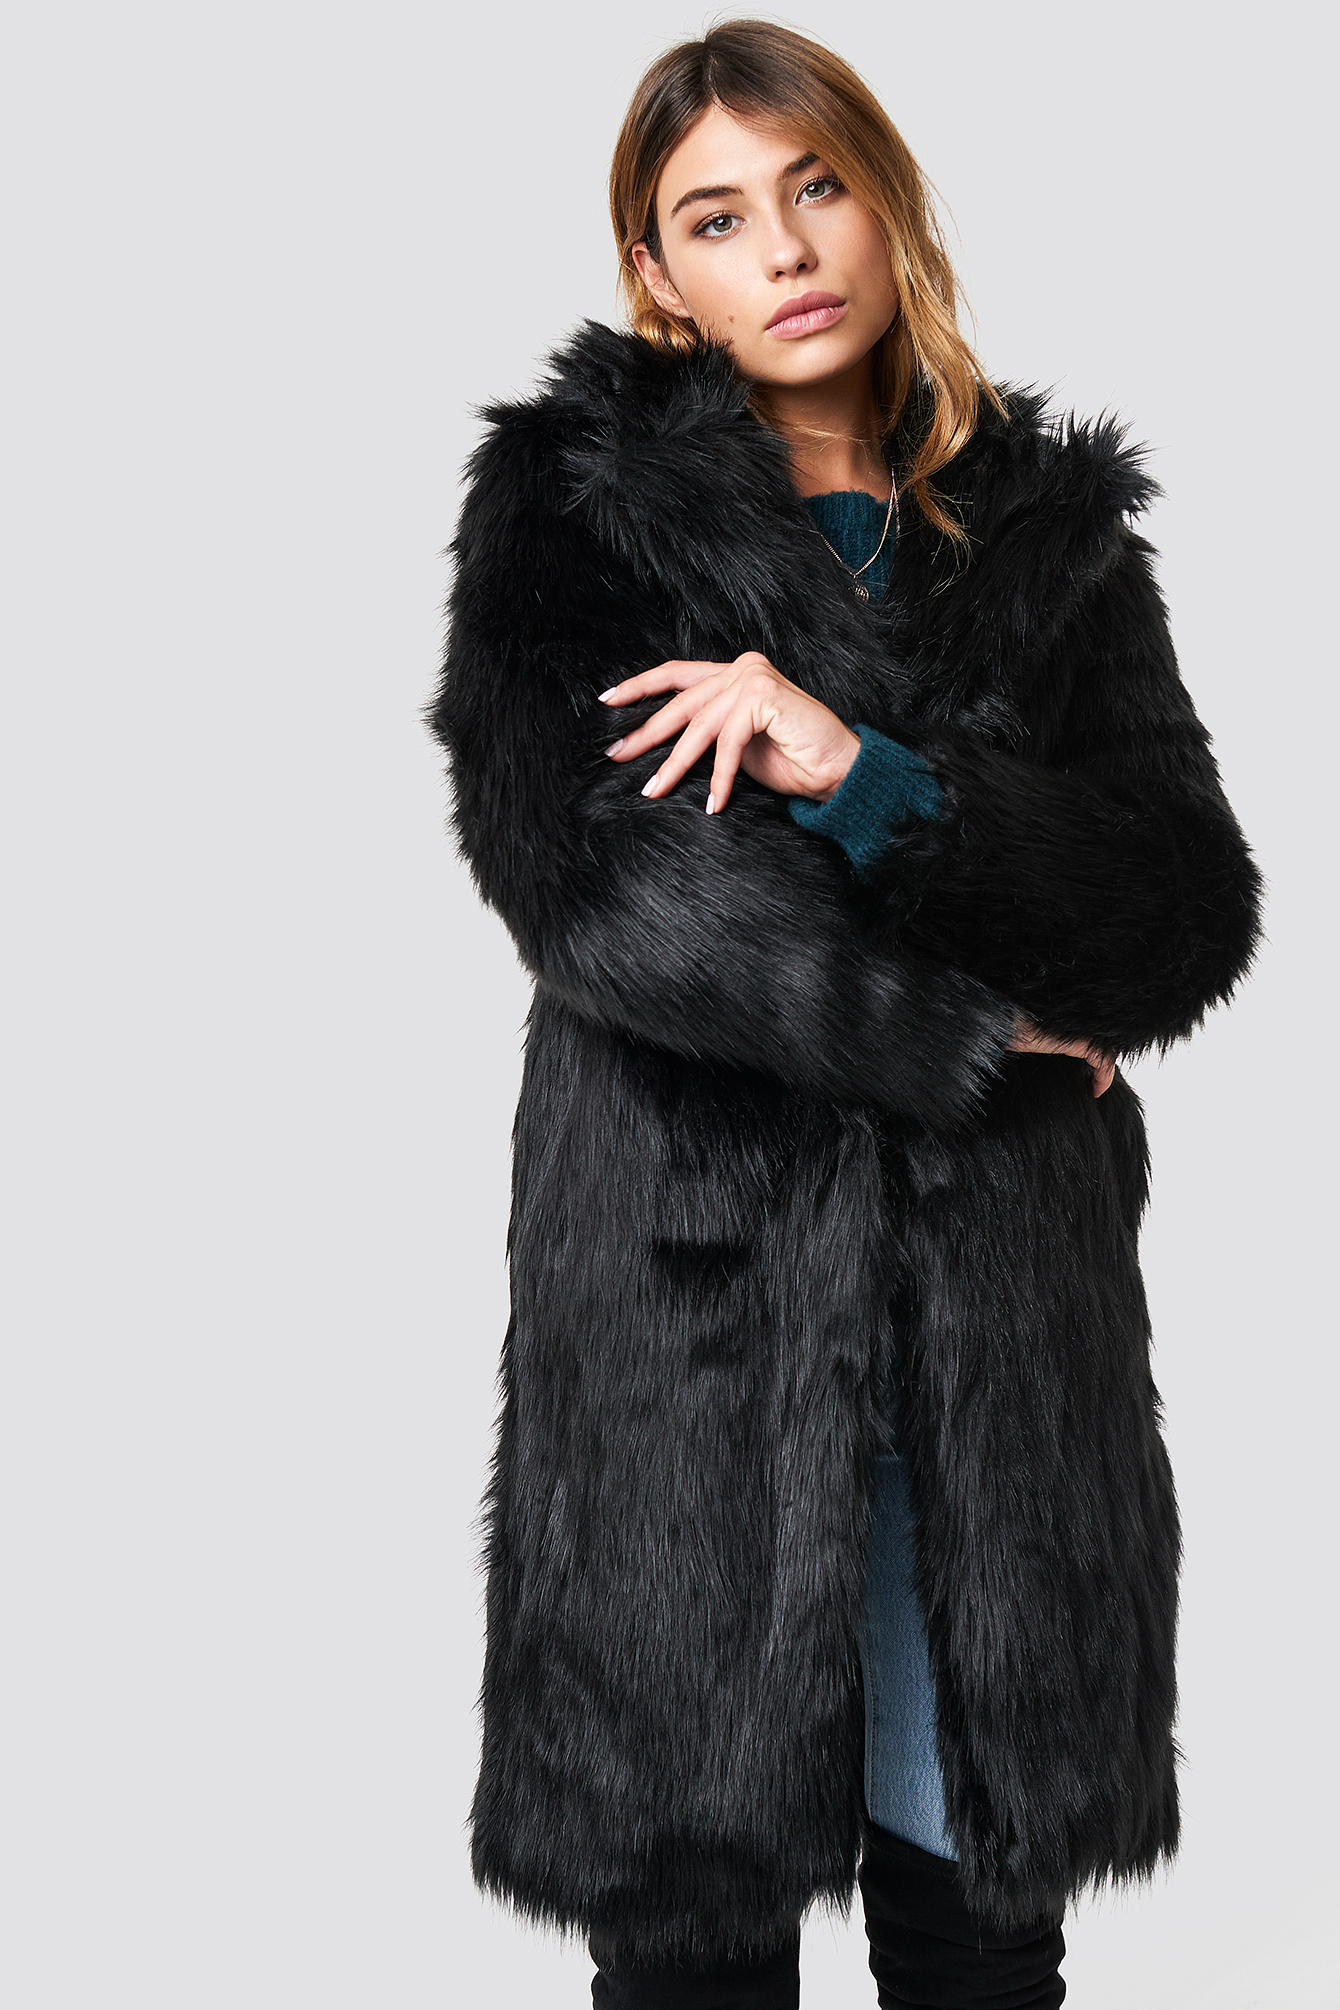 linn ahlborg x na-kd -  Long Faux Fur Coat - Black